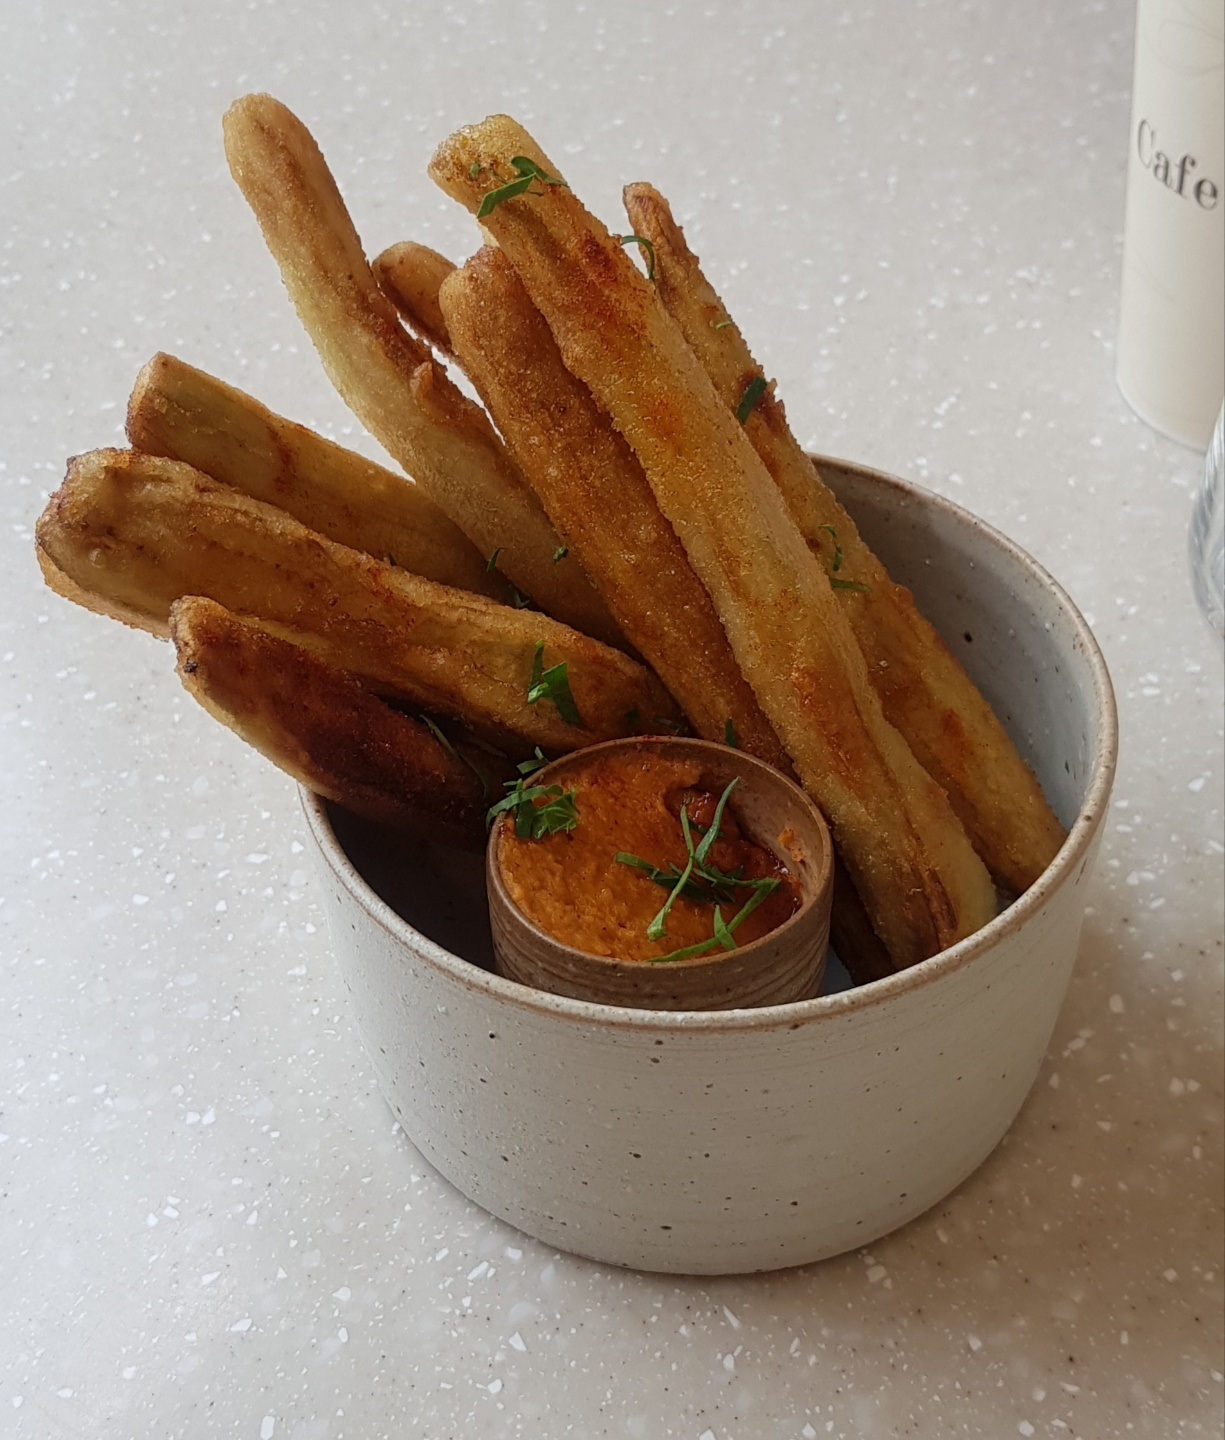 Bistro Antrho's eggplant fries served with smoky paprika-laced hummus. (Jean Oh /The Korea Herald)